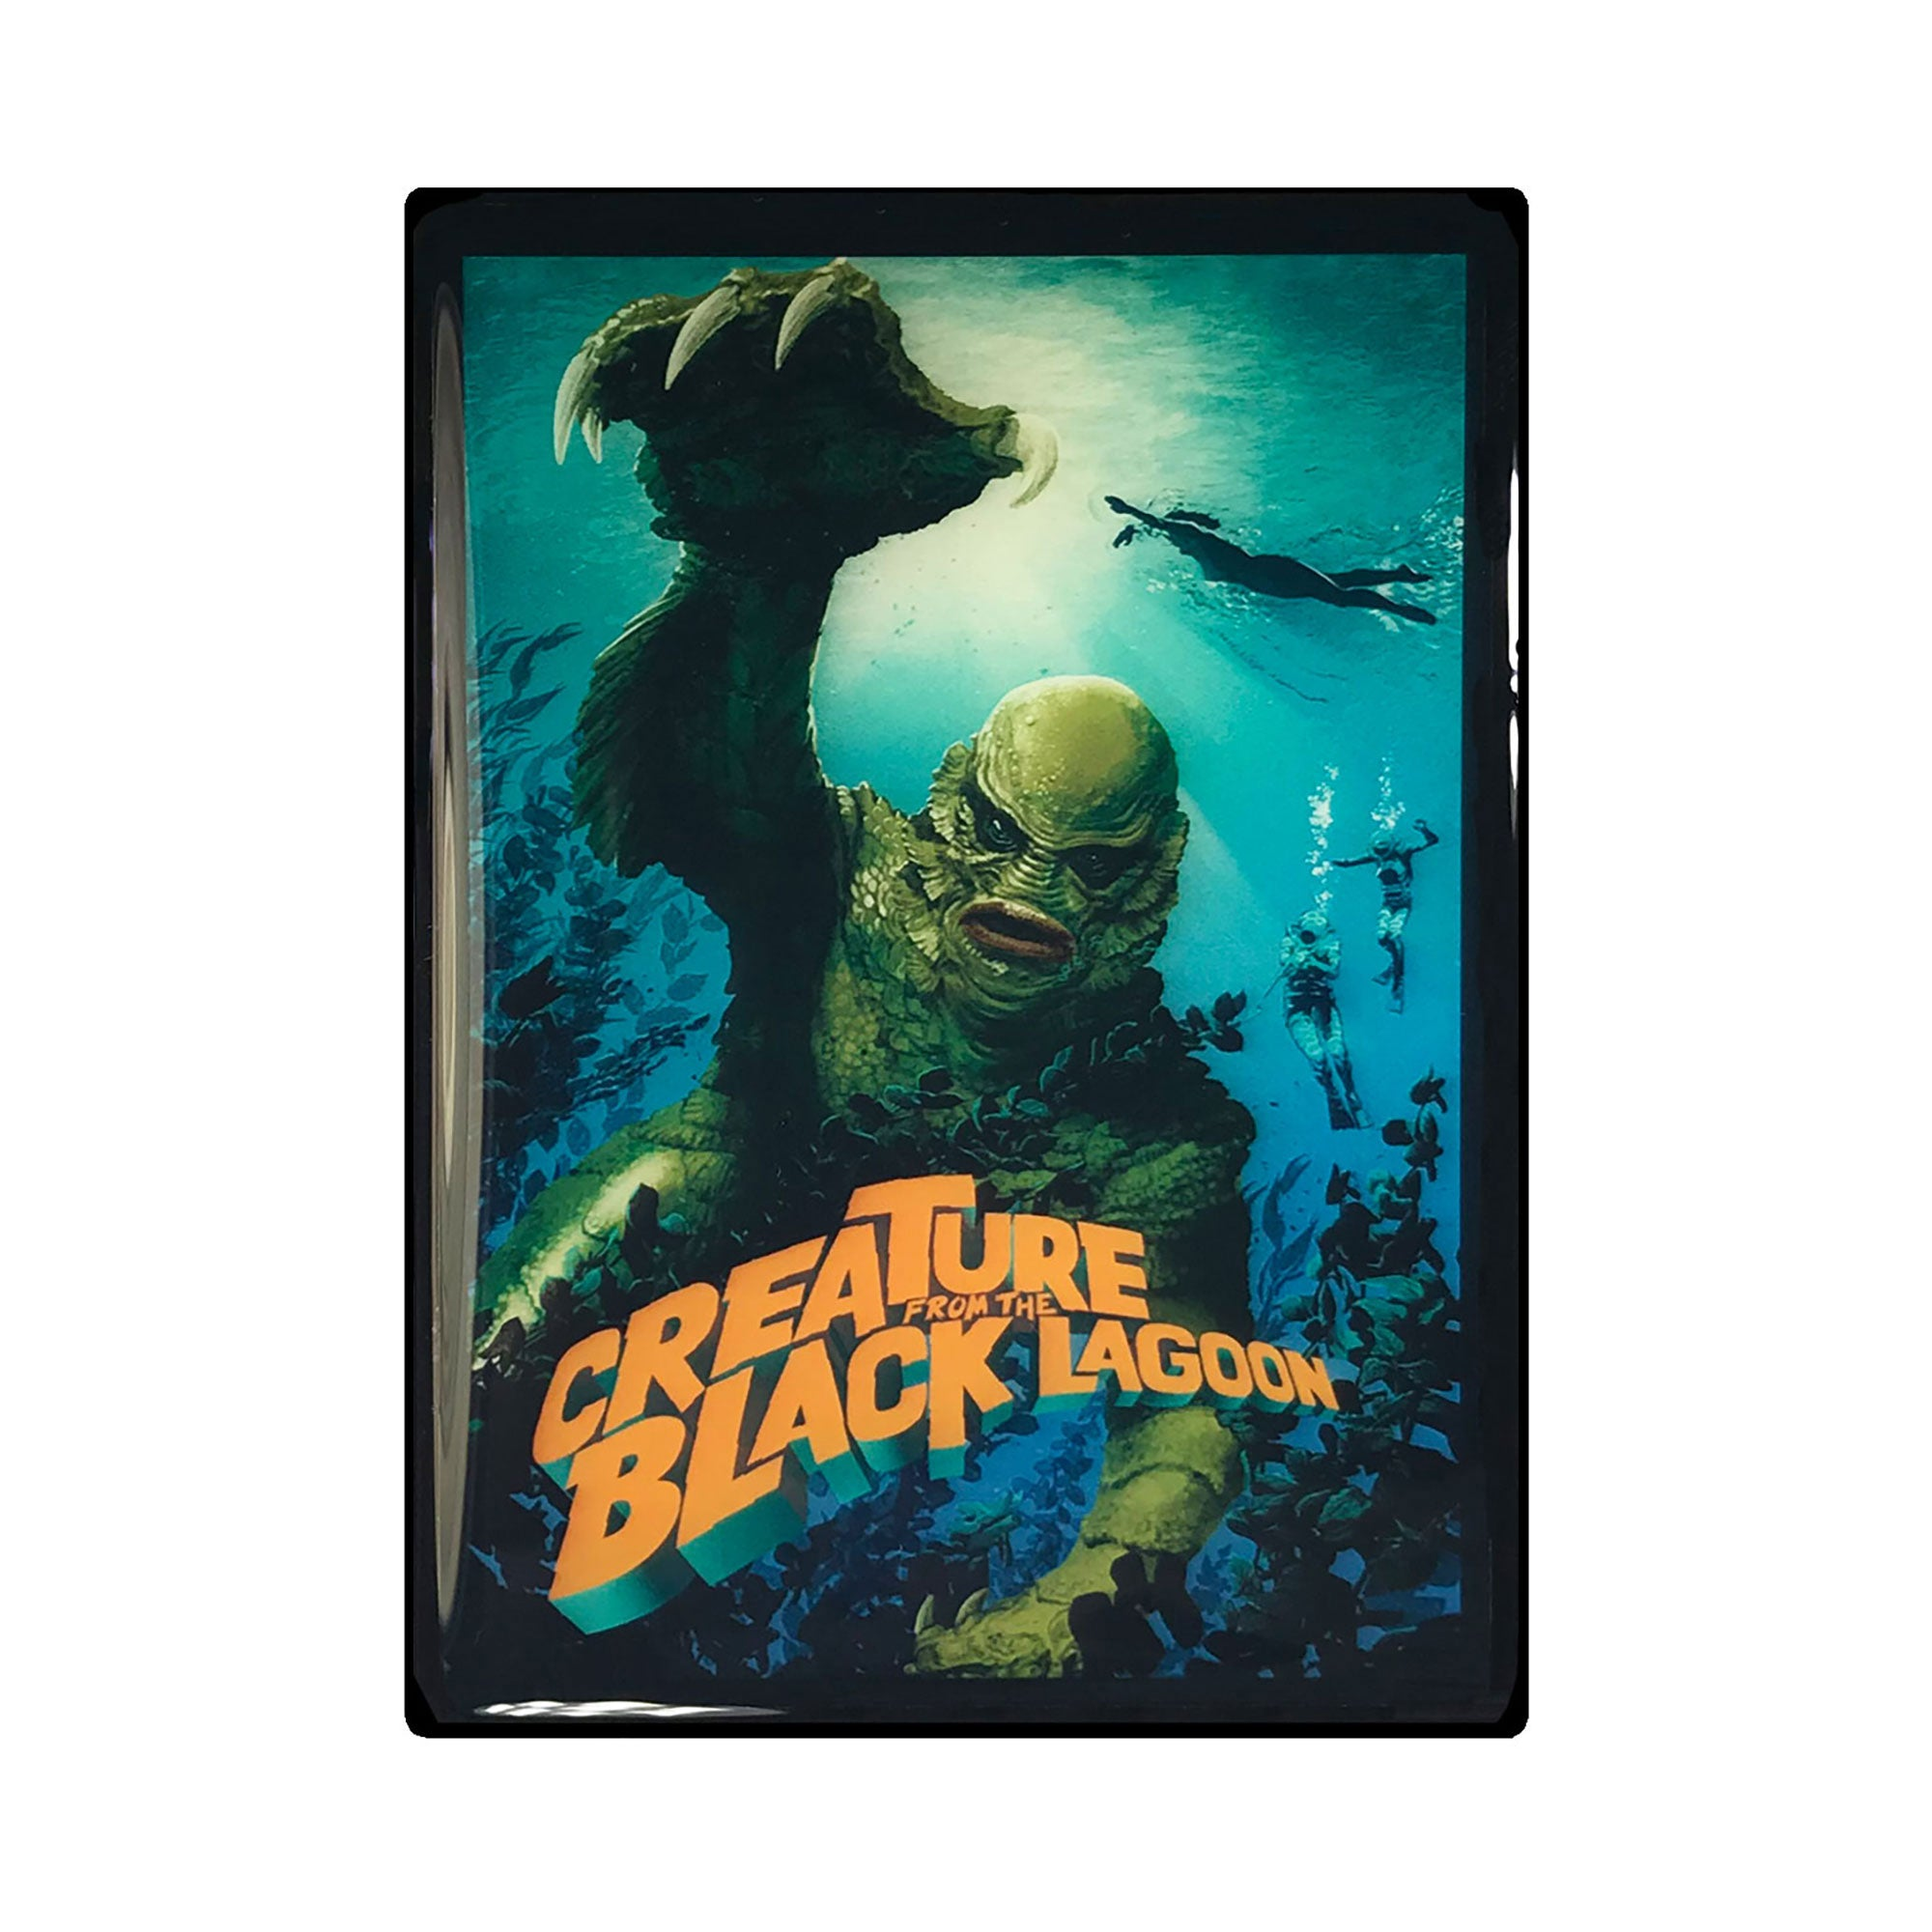 Creature from the Black Lagoon Vintage Movie Poster Magnet